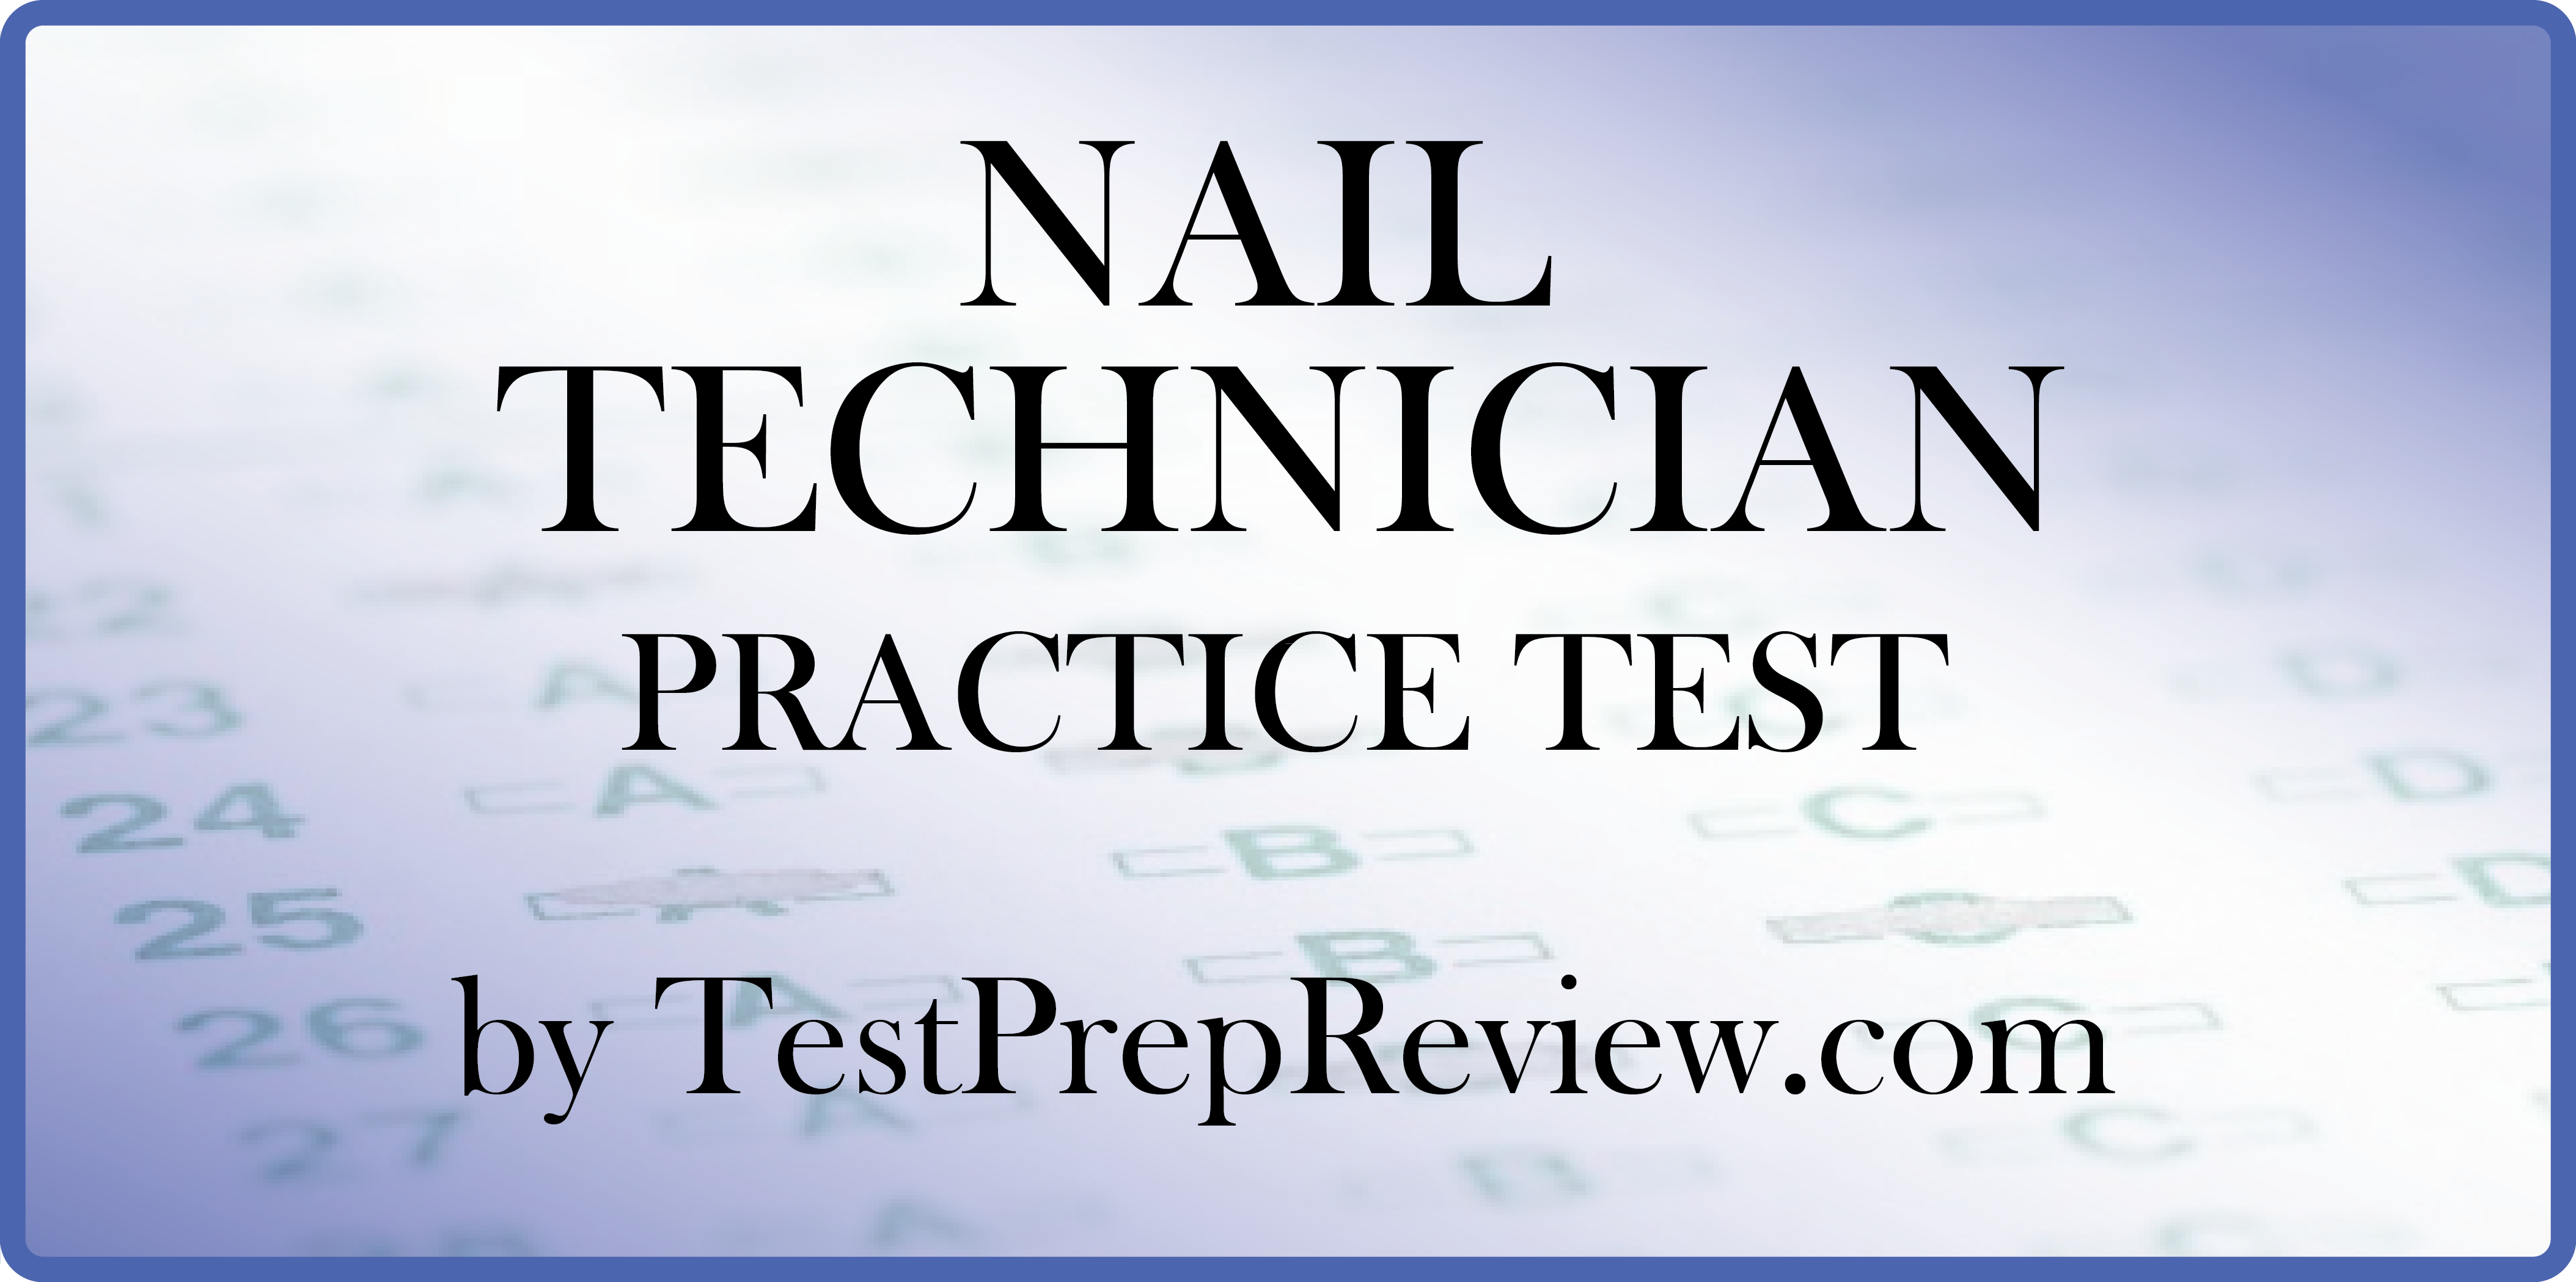 Free Nail Technician Practice Test offered by TestPrepReview. Nail Technician test study aid.